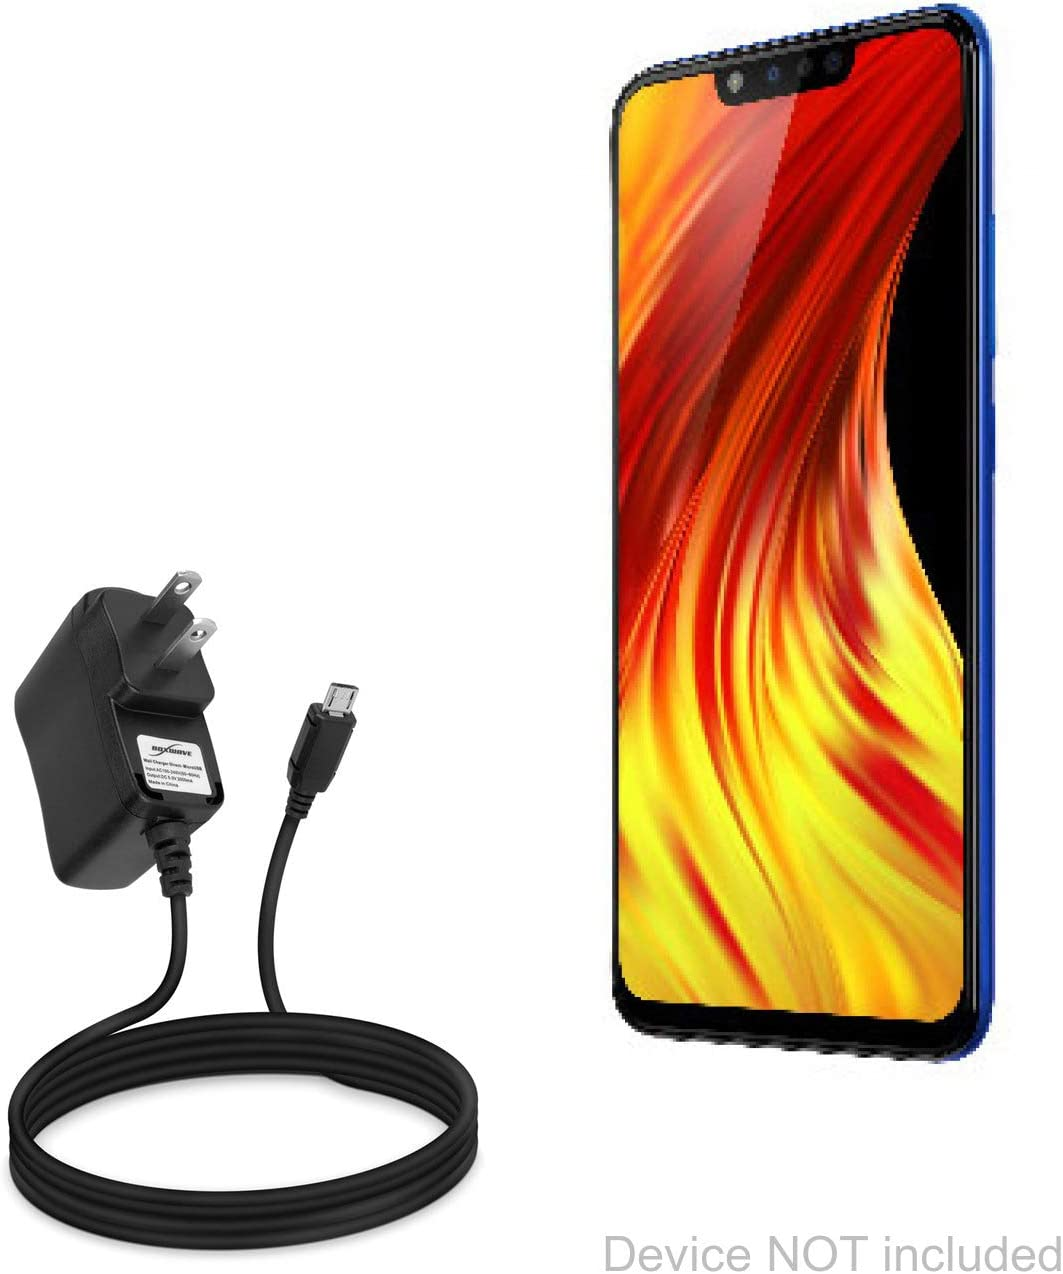 Retractable BoxWave Portable Sync Cable for Infinix Hot 7 Pro miniSync Infinix Hot 7 Pro Cable